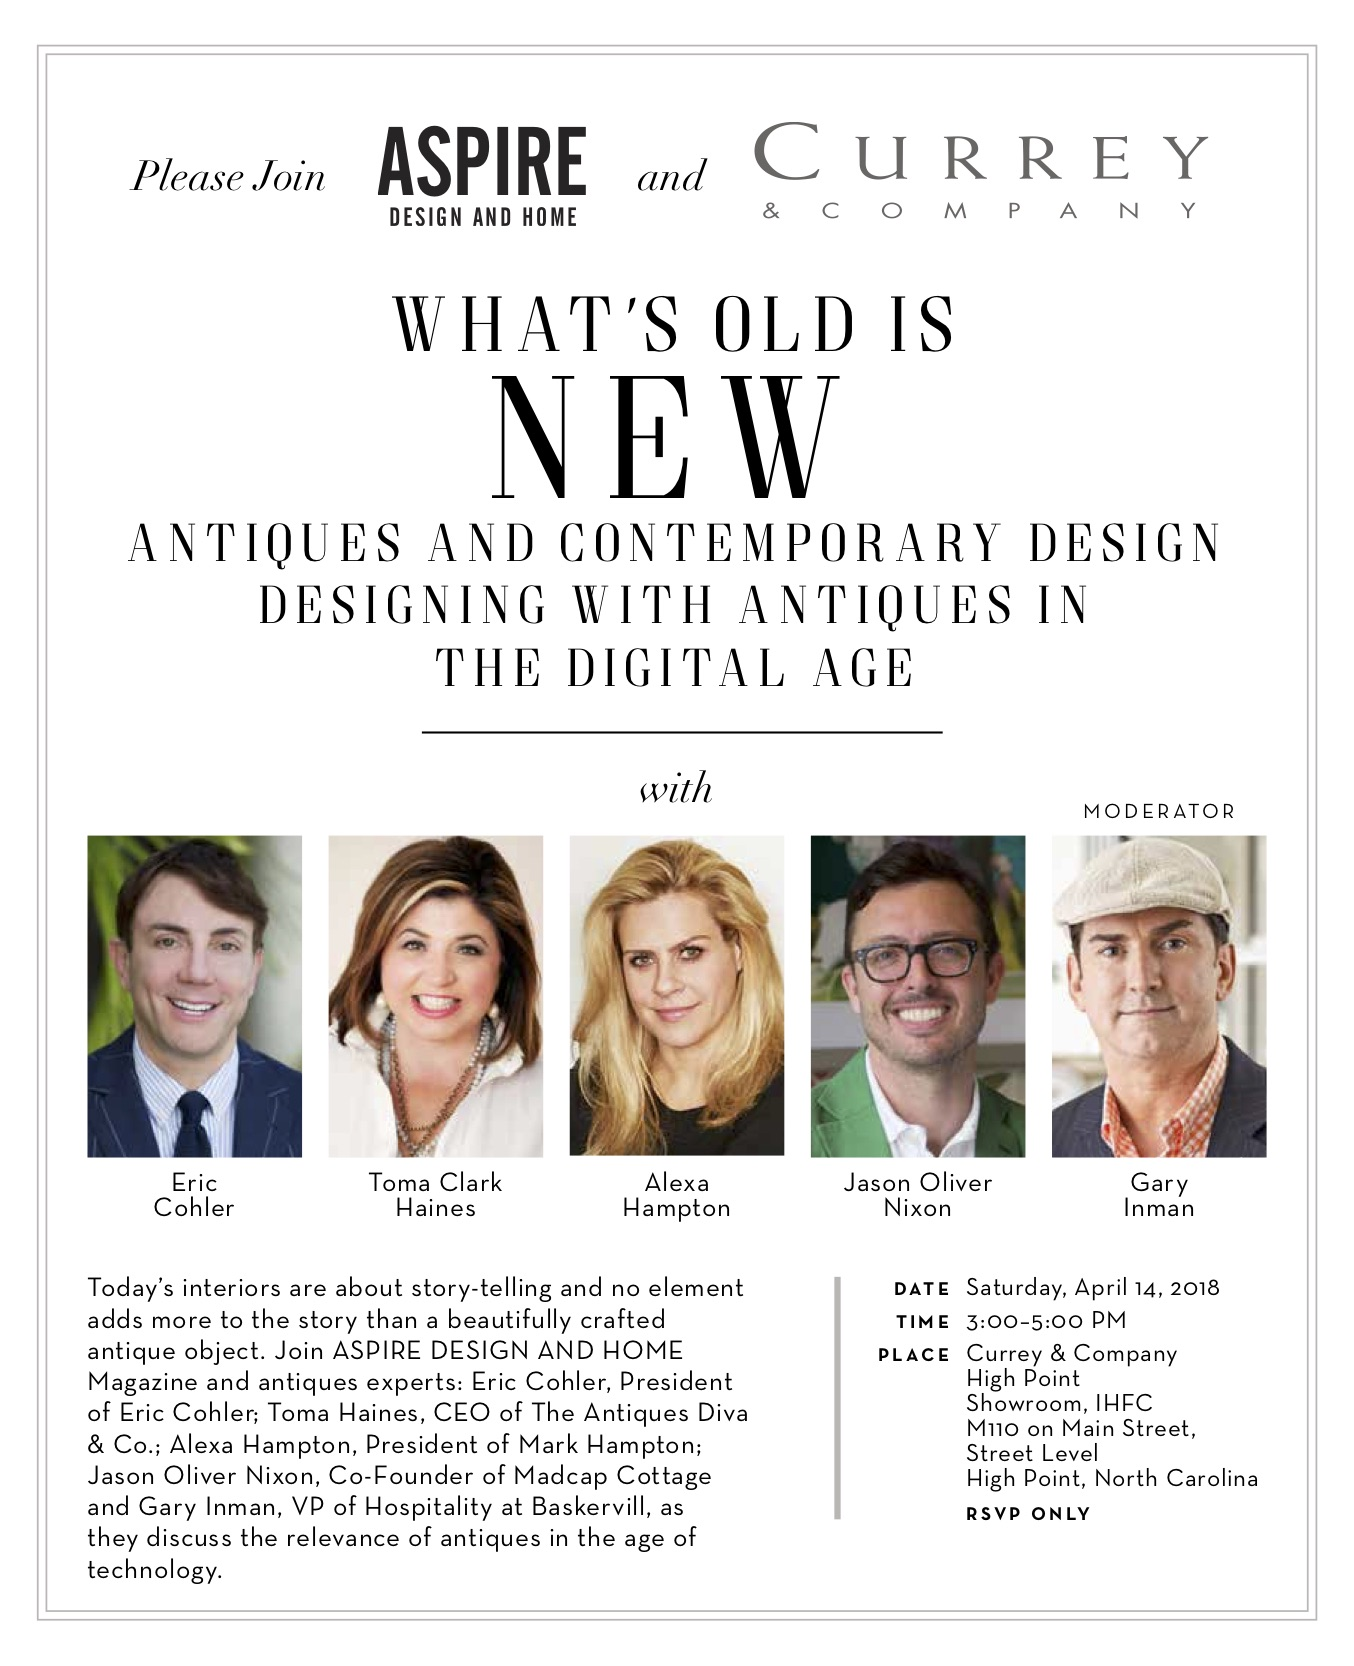 WHAT'S OLD IS NEW- ANTIQUES and CONTEMPORARY DESIGN with Toma Clark Haines The Antiques Diva